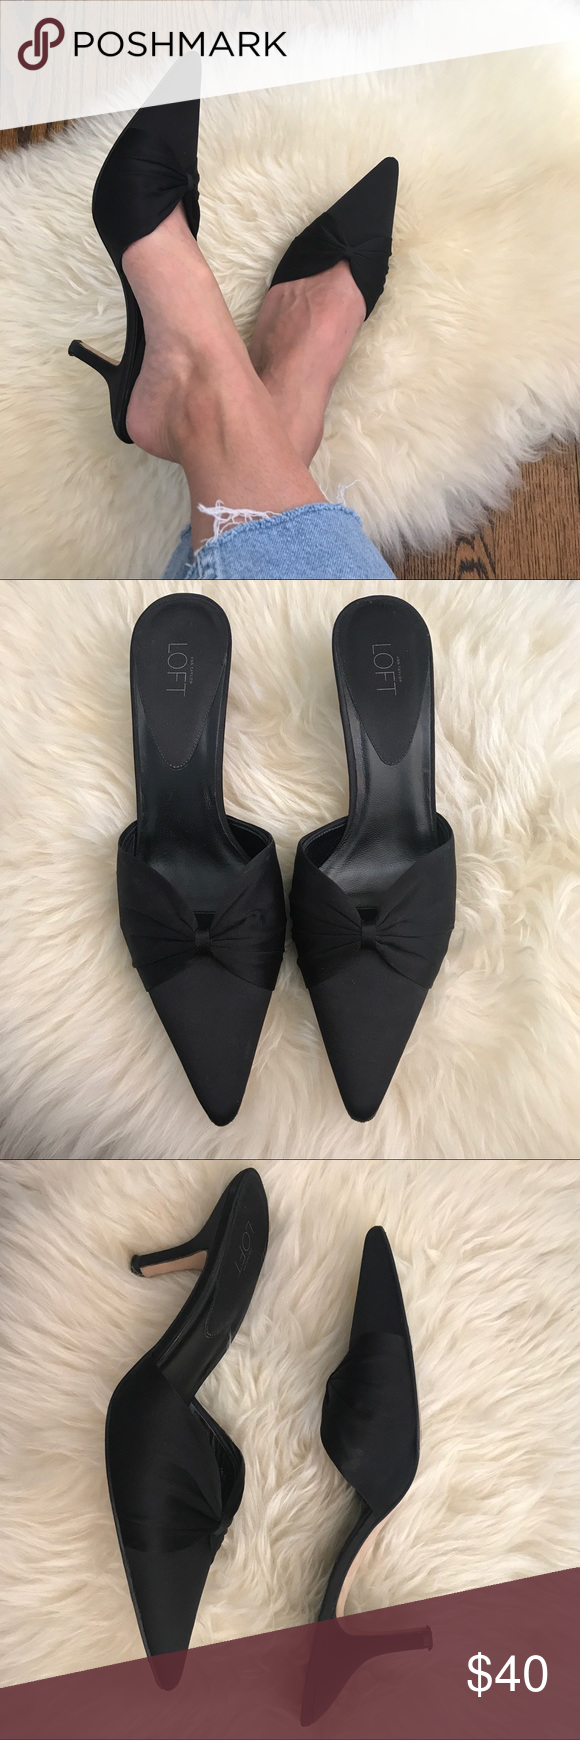 f7b84f9a7ddb Perfect Pointy Toe Kitten Heel Mules The perfect pair of black satin mules  featuring bow detailing and kitten heels. Looks amazing paired with cut off  ...